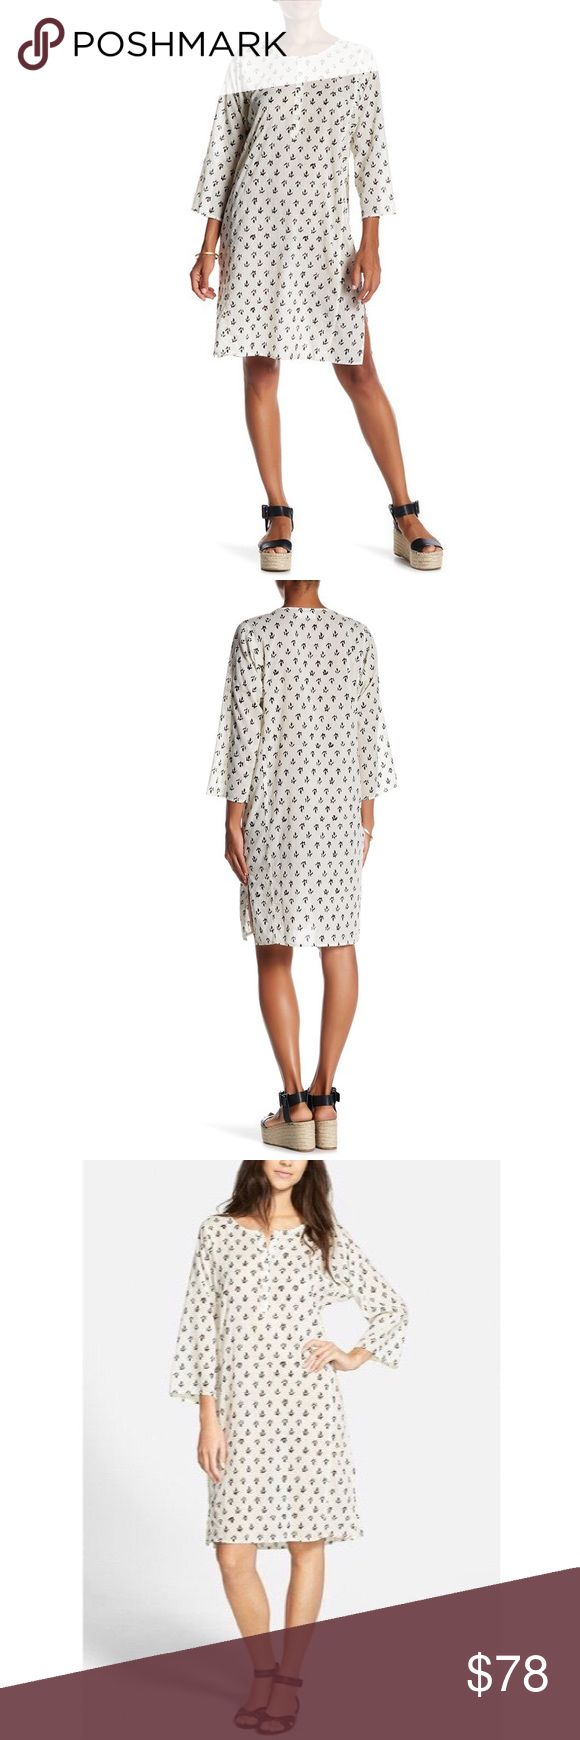 Velvet by Graham Spencer White Print Voile Dress Brand new with tags. Cotton is a big see through, so this would be good to wear with a slip, nude underwear, or as a tunic. More photos coming soon Velvet by Graham & Spencer Dresses Midi